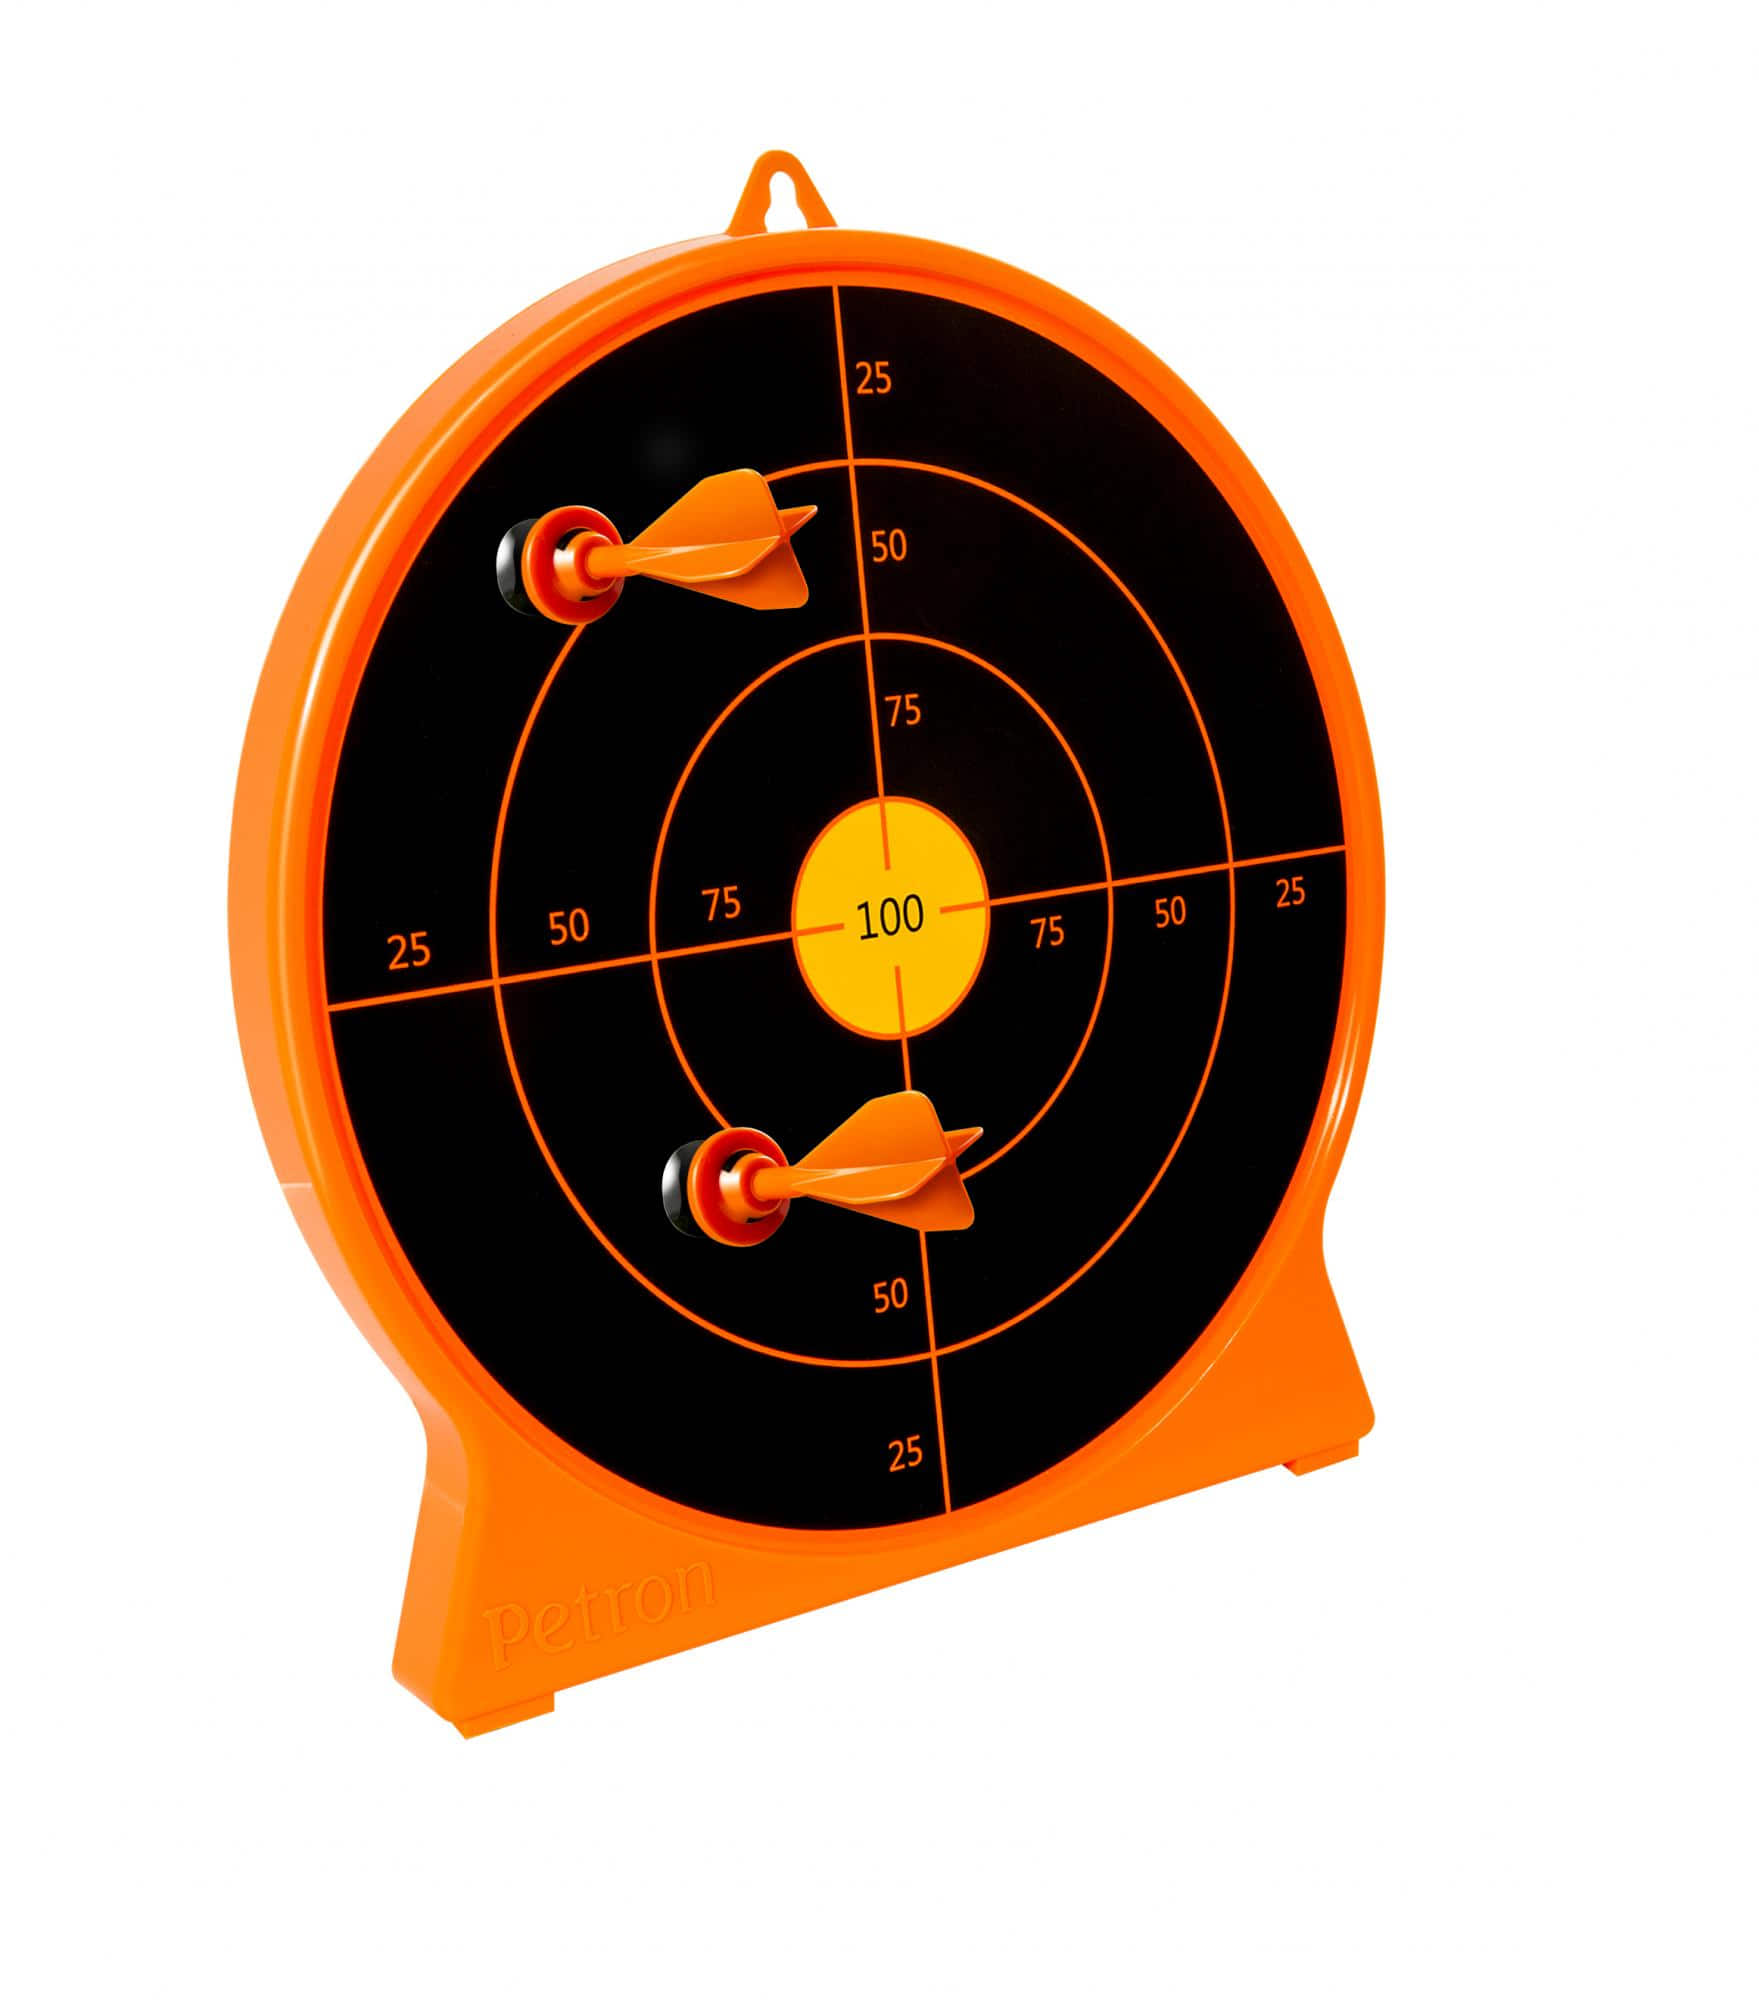 Target Plus Darts HI RES JPEG-CIBLES SURESHOT - PETRON - A56560